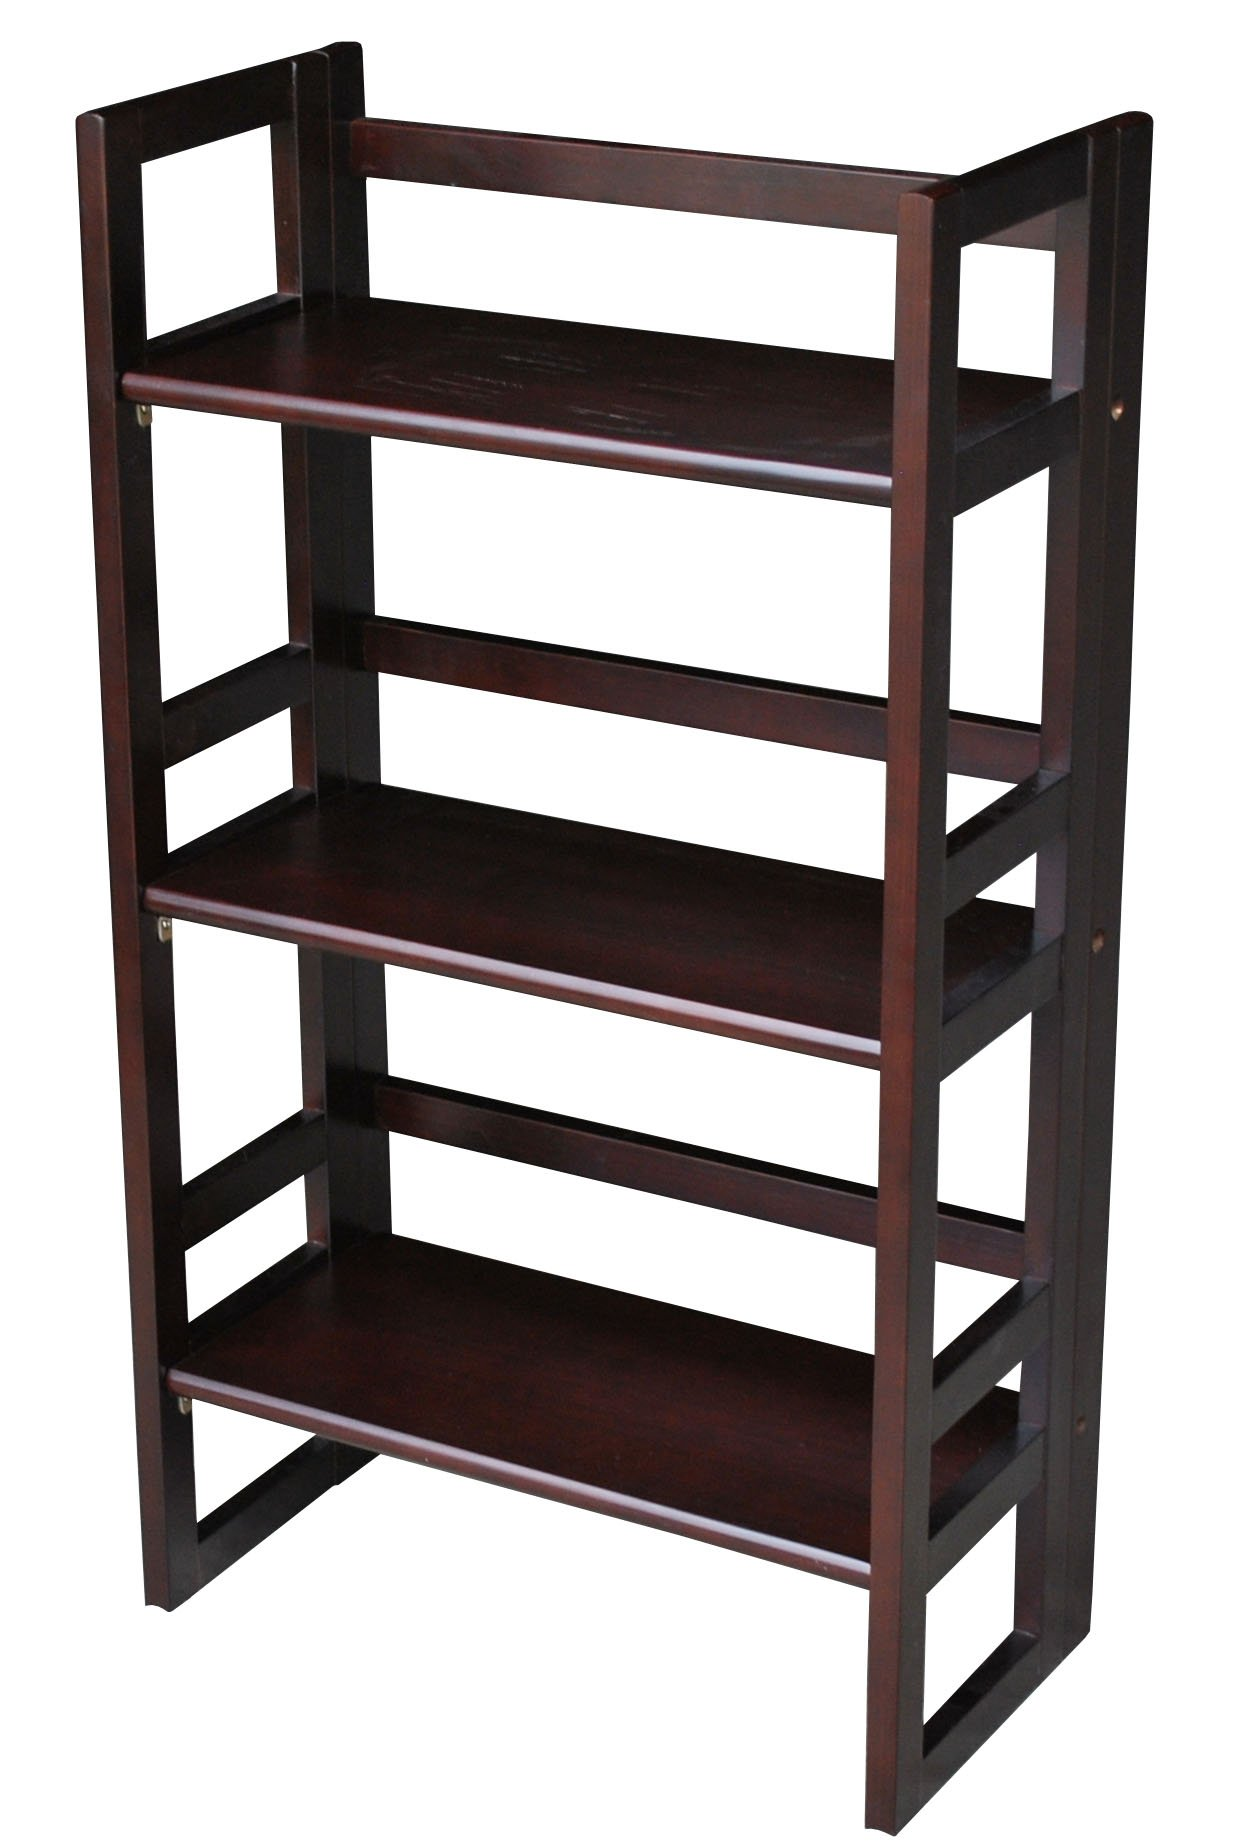 casual home 3 tier folding student bookcase 20 75 inch wide espresso ebay. Black Bedroom Furniture Sets. Home Design Ideas